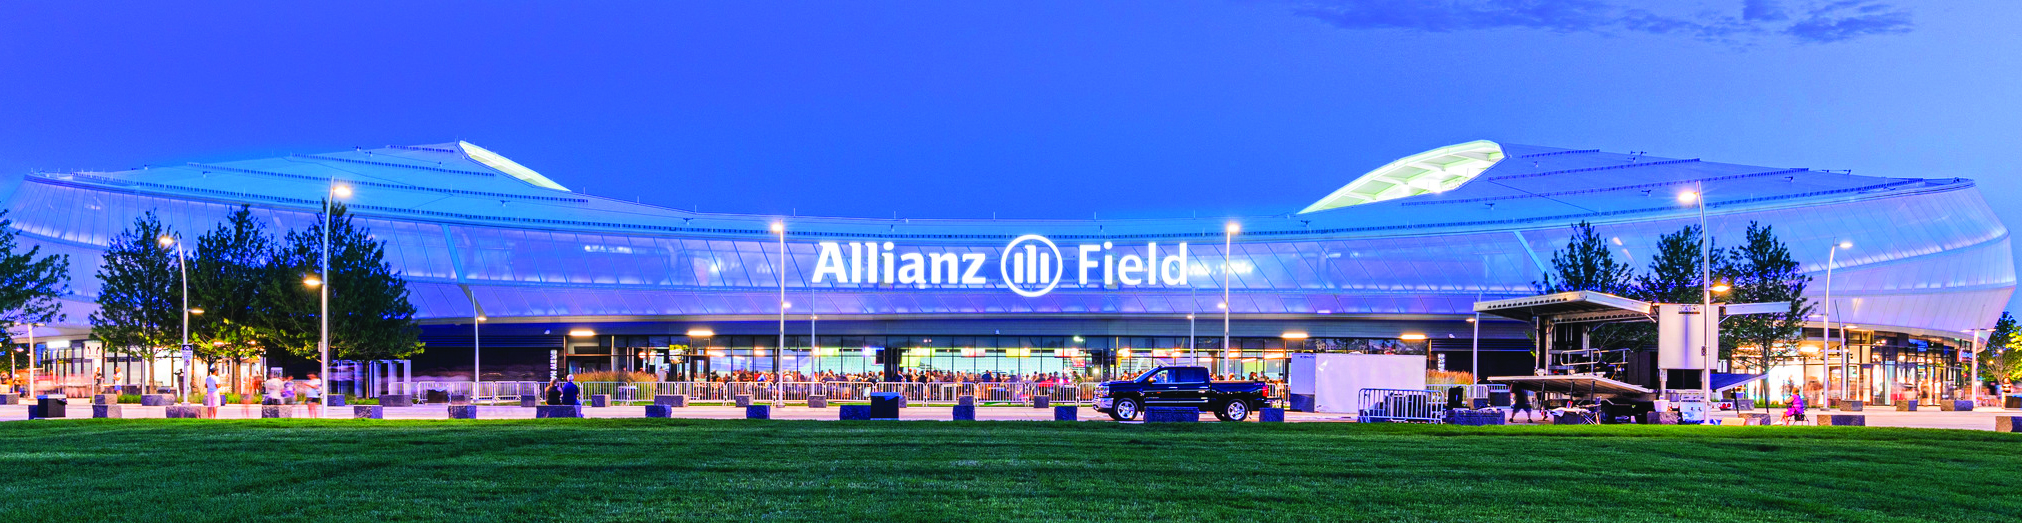 Allianz Field project photo